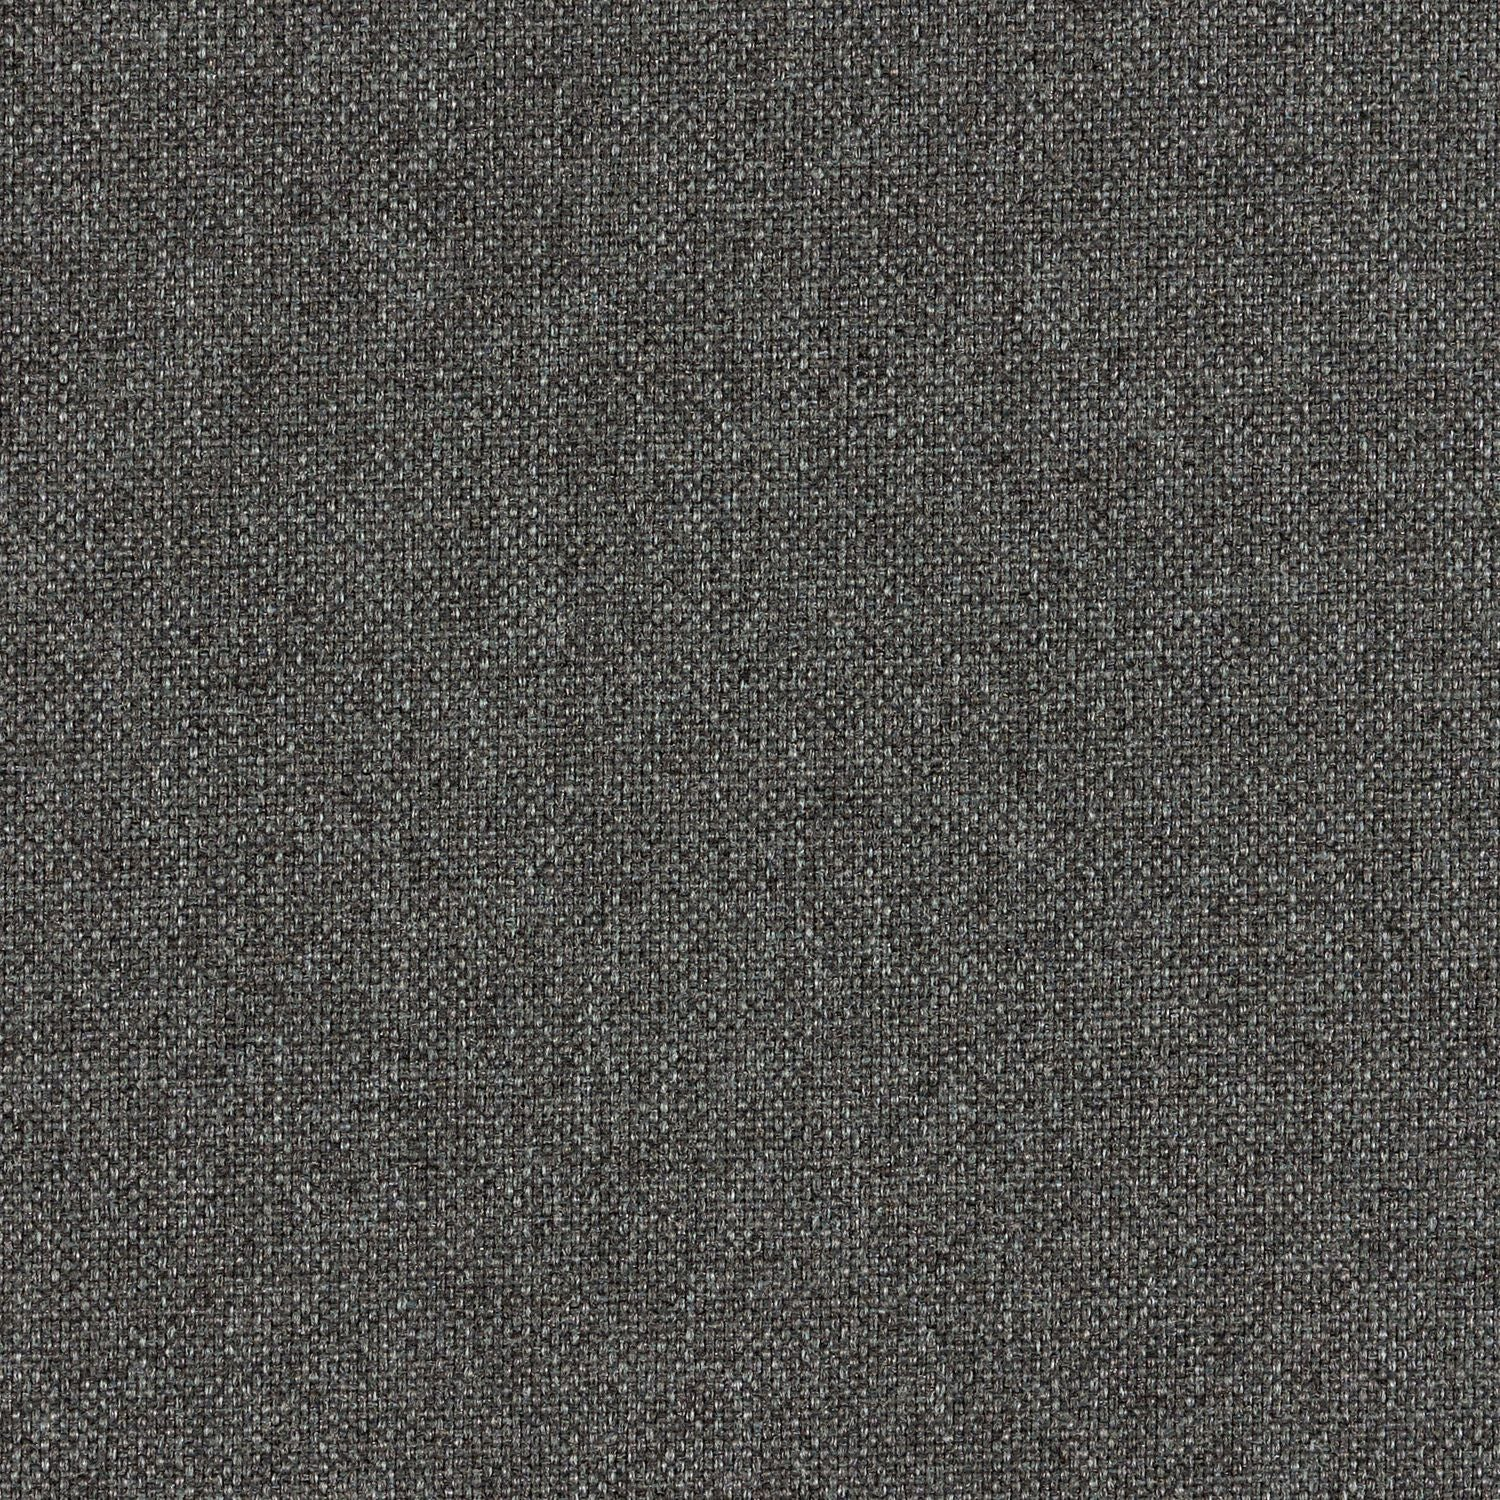 Backdrop - Opaque - 1027 - 07